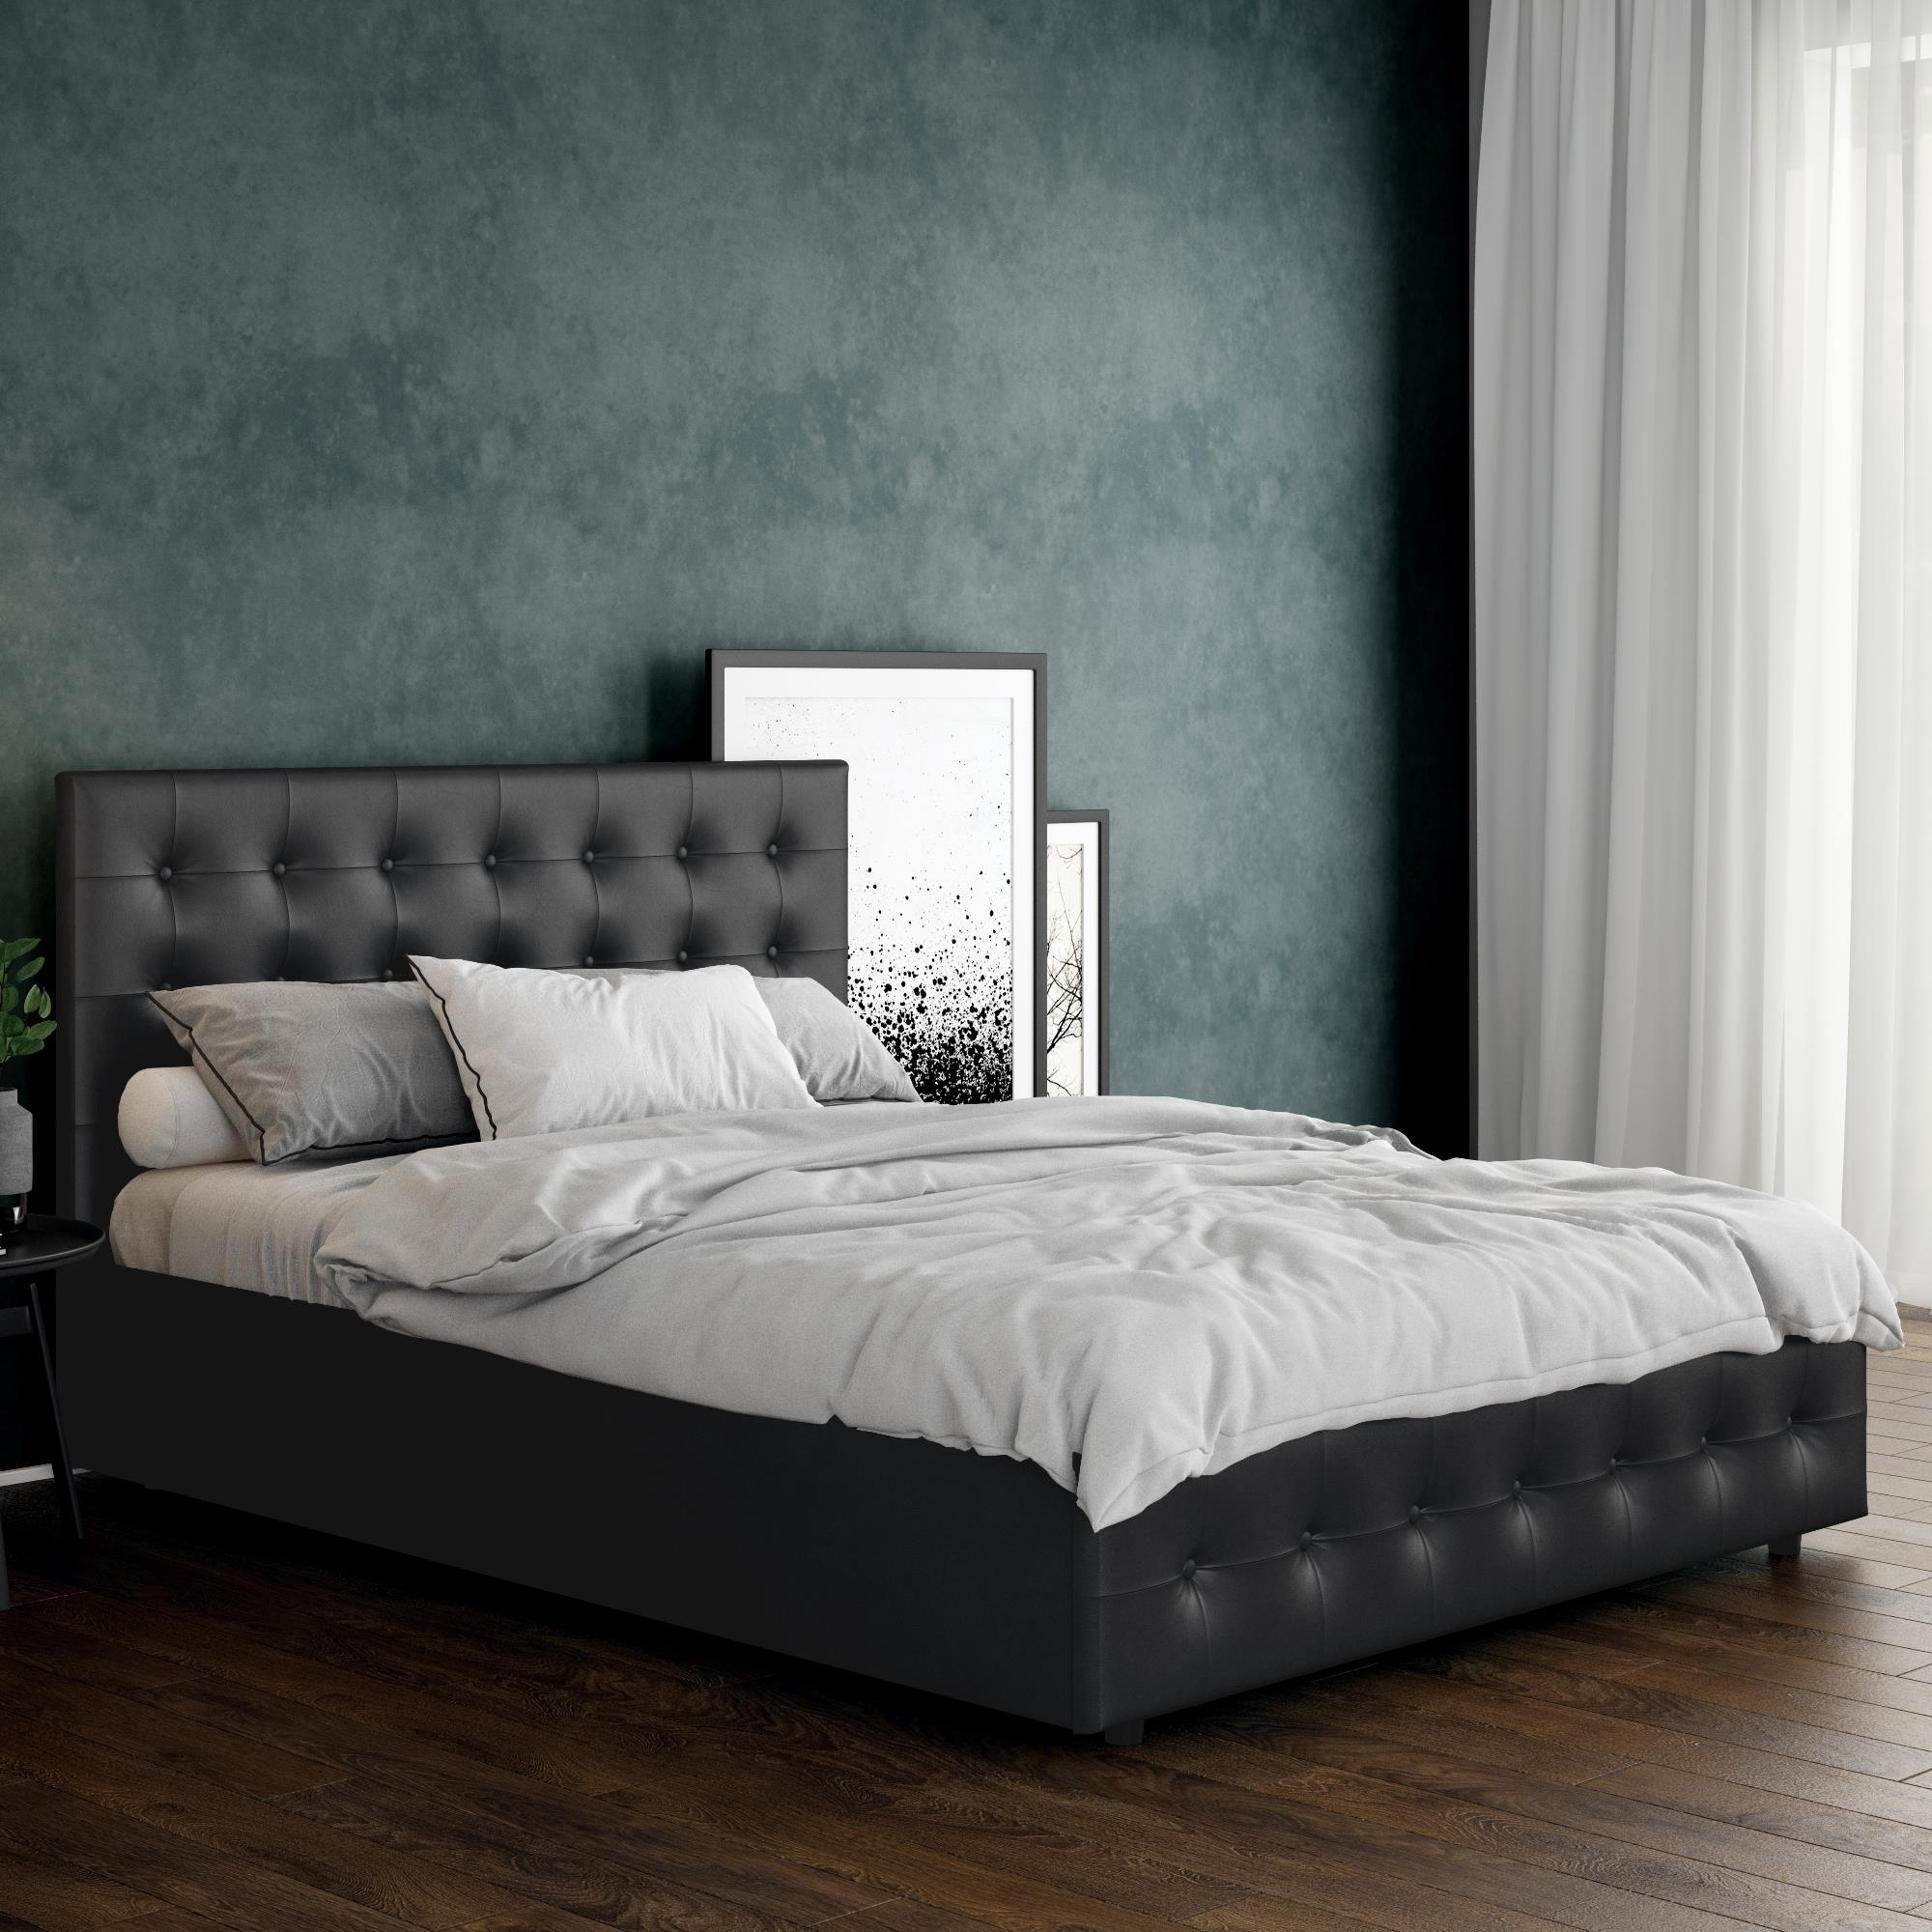 Black Faux Leather Upholstered Bed